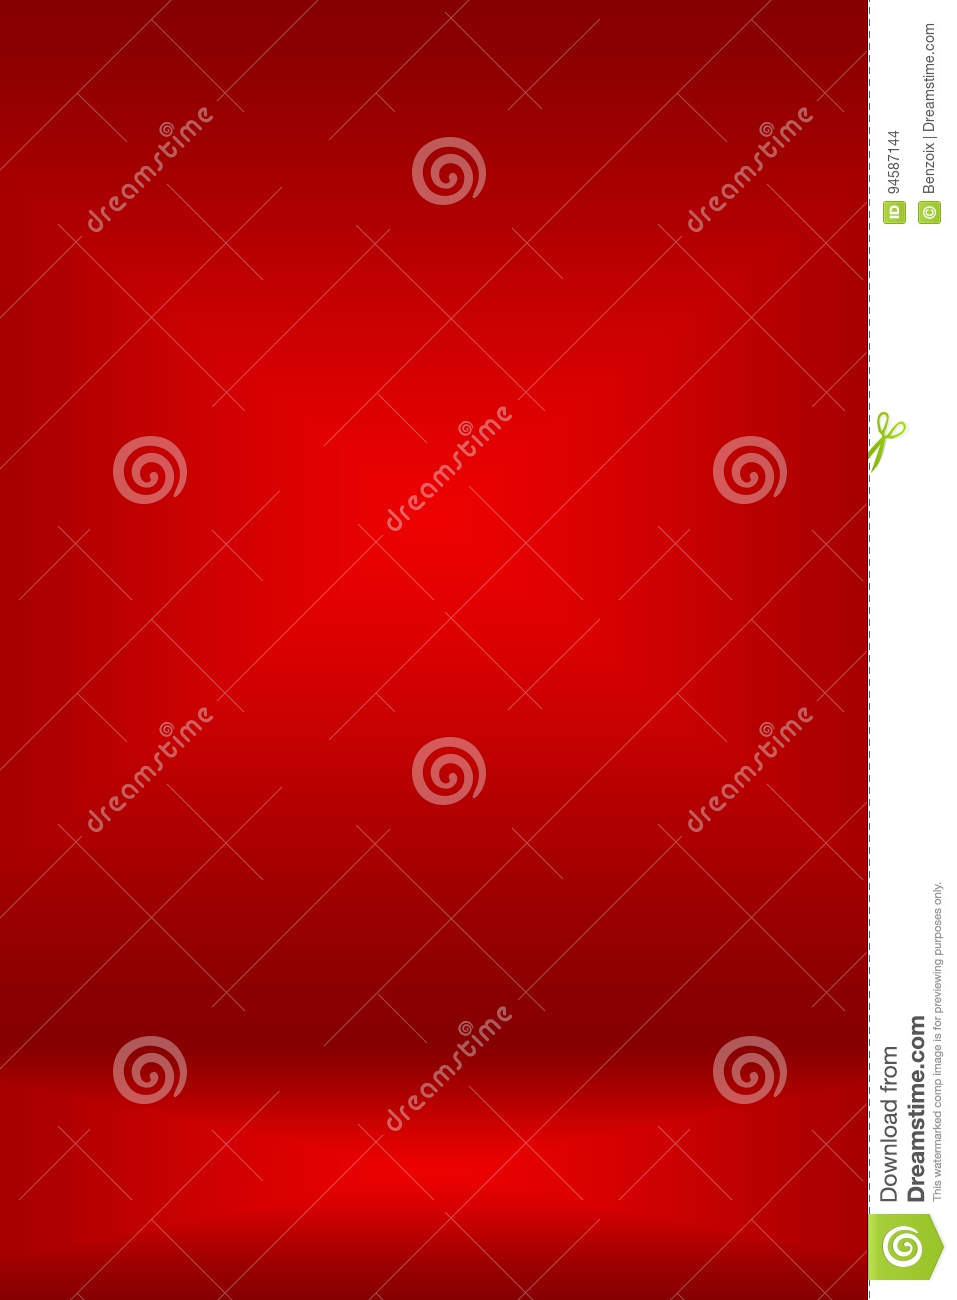 Room Design Layout Templates: Abstract Red Background Christmas Valentines Layout Design